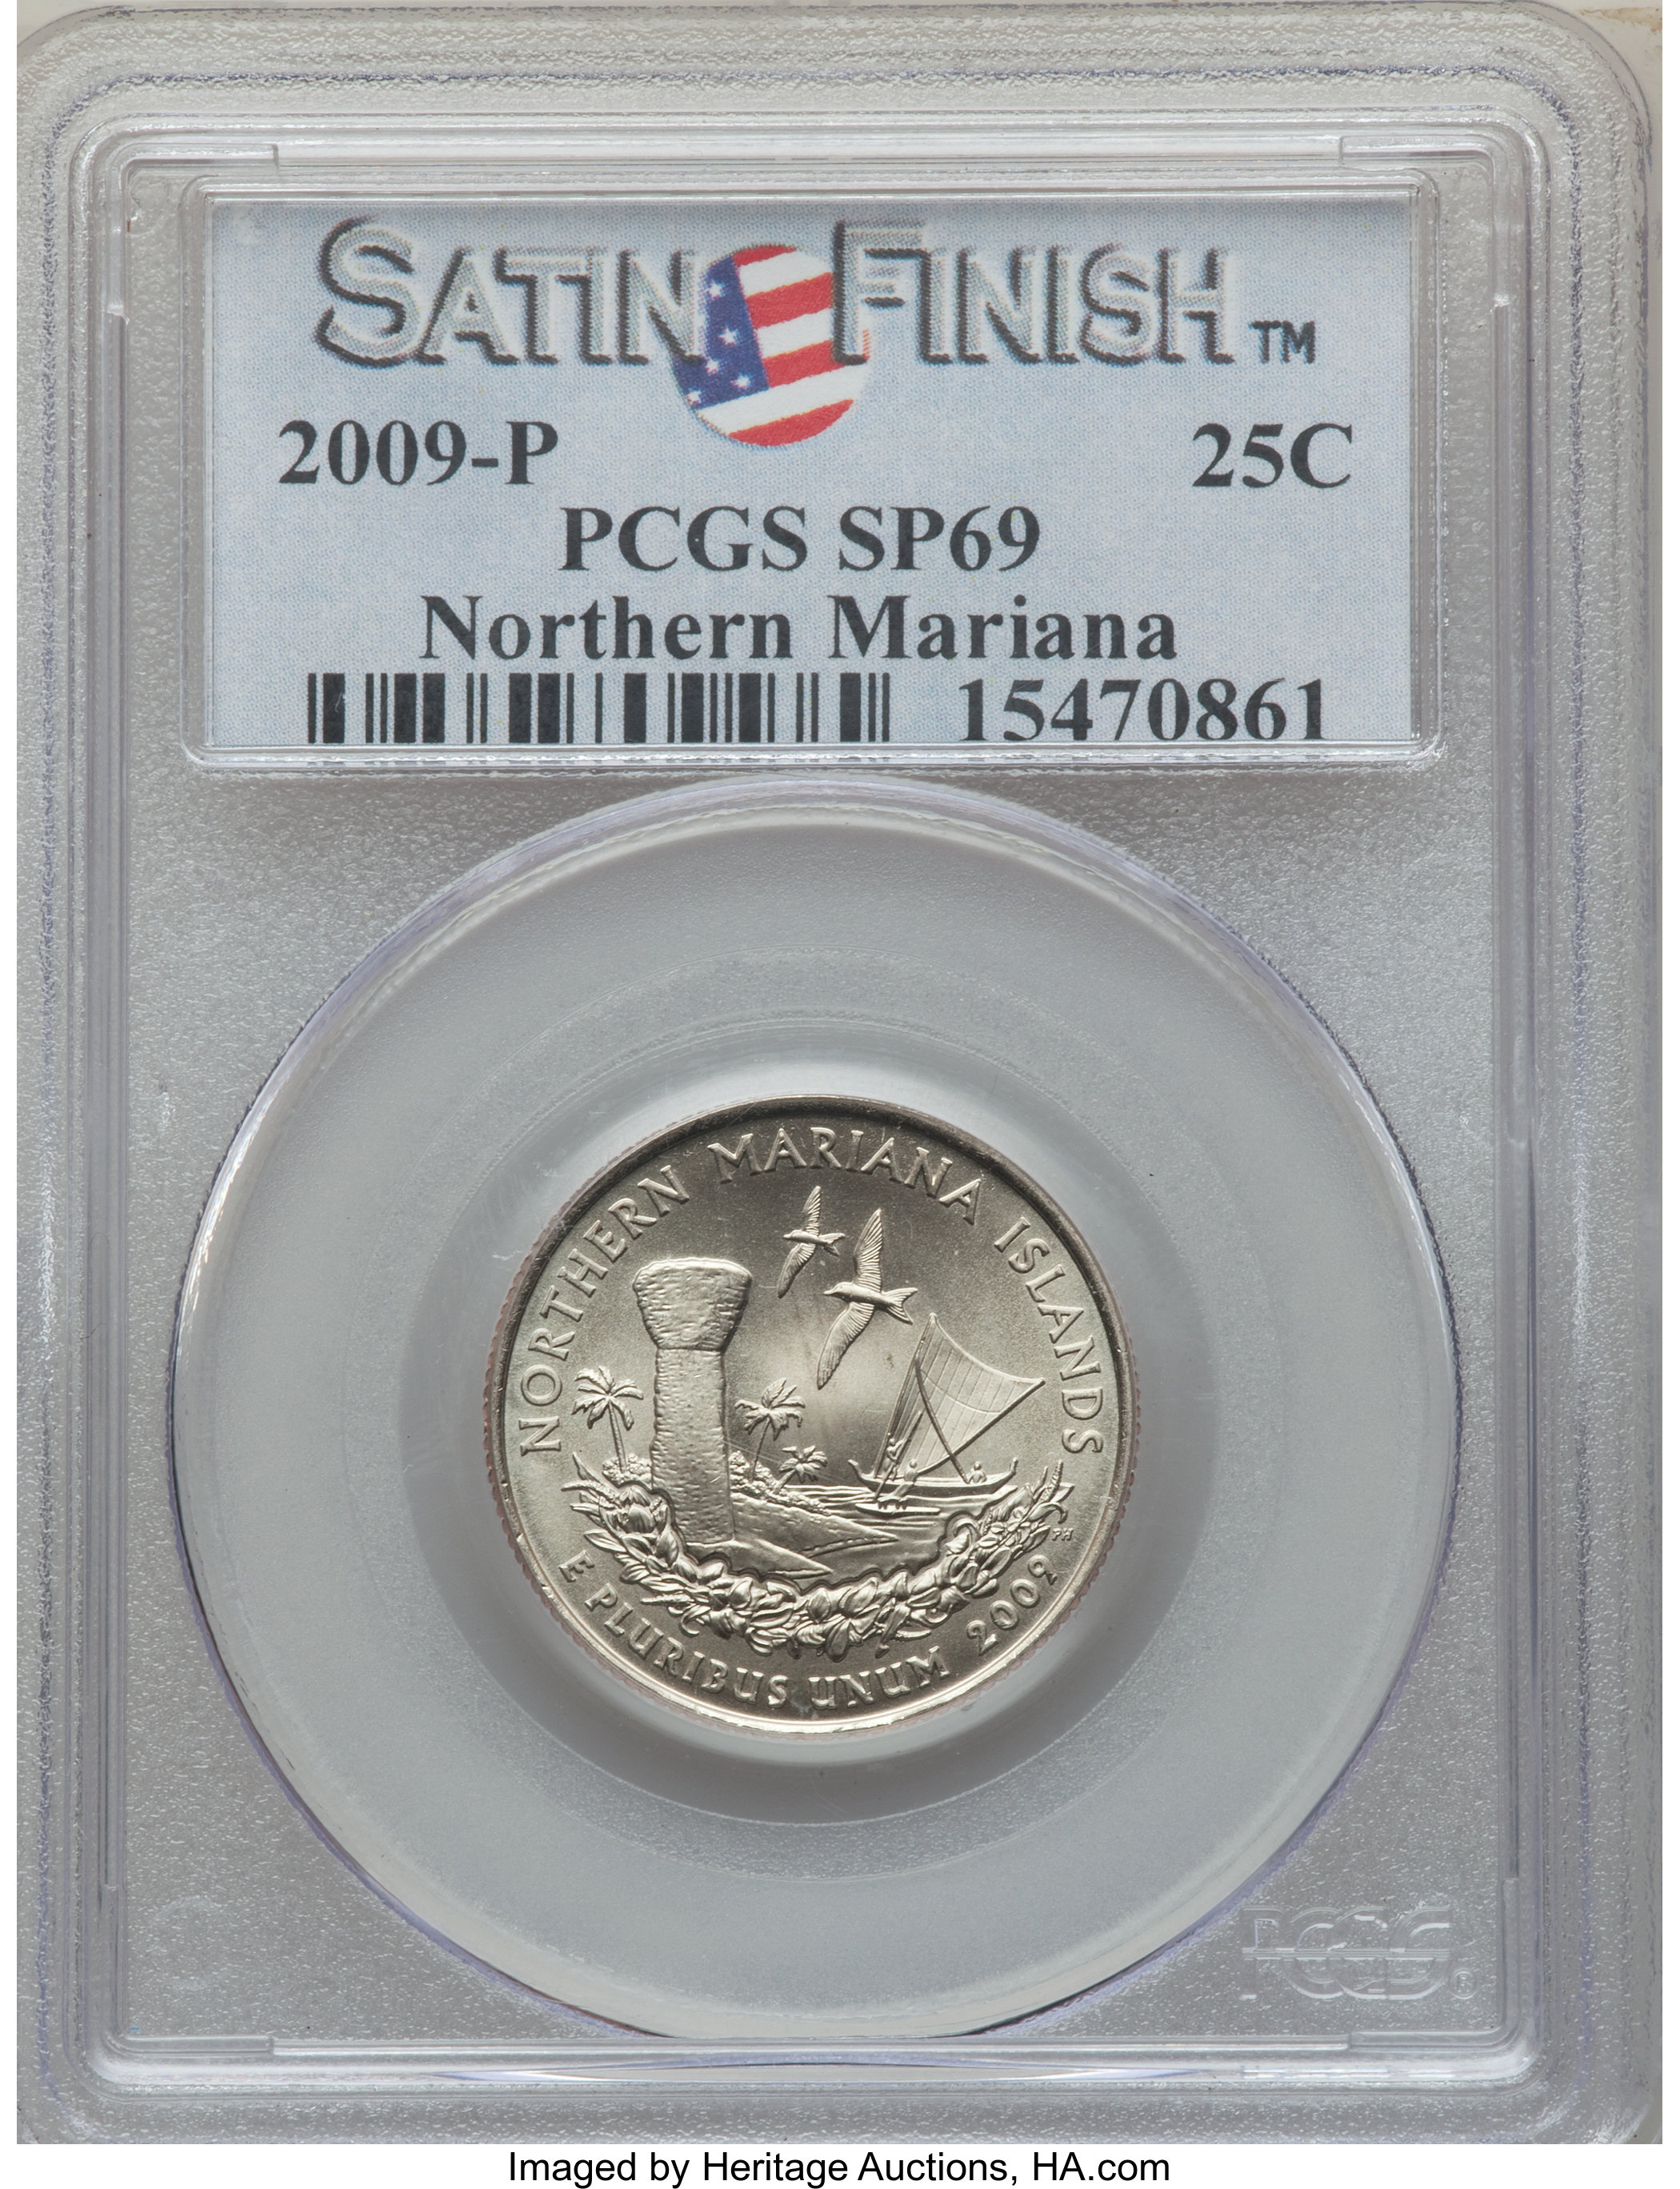 sample image for 2009-D Northern Mariana Islands 25c SP Satin